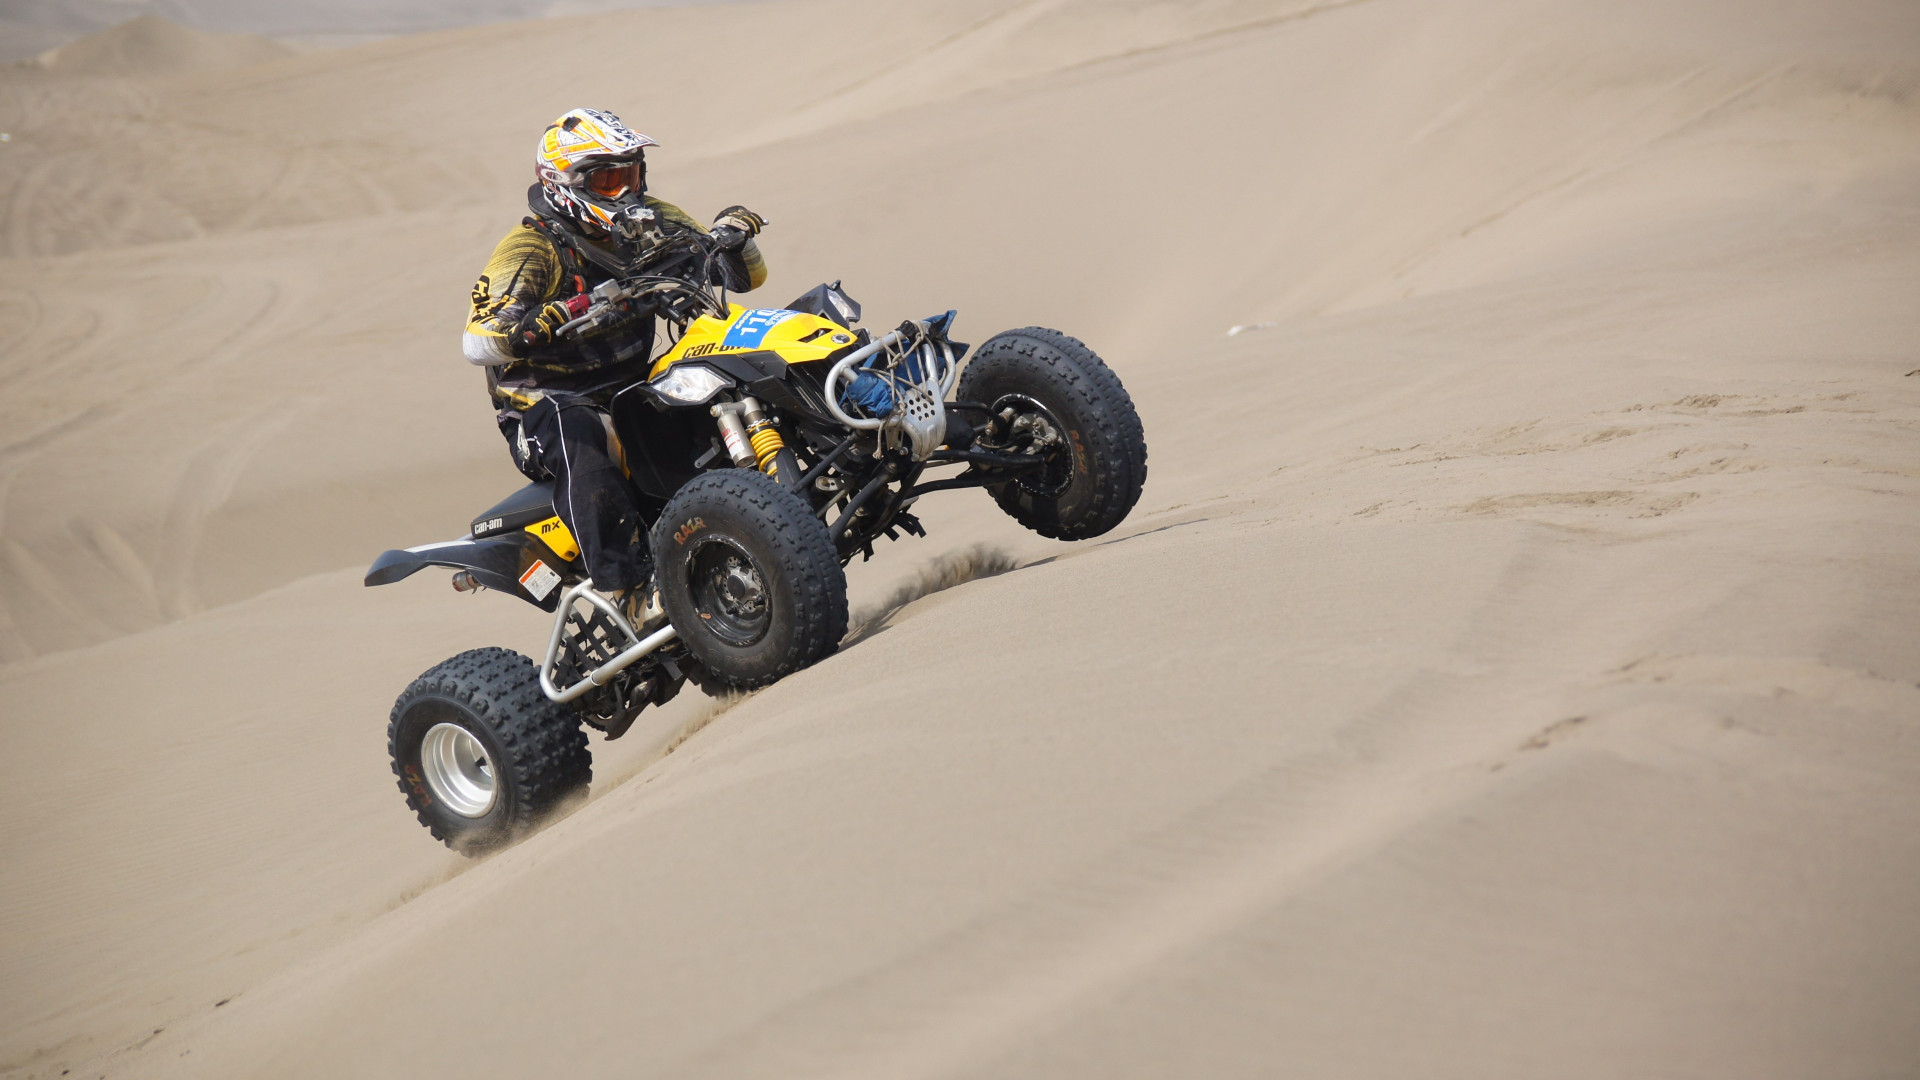 Racing with ATV wallpaper 1920x1080